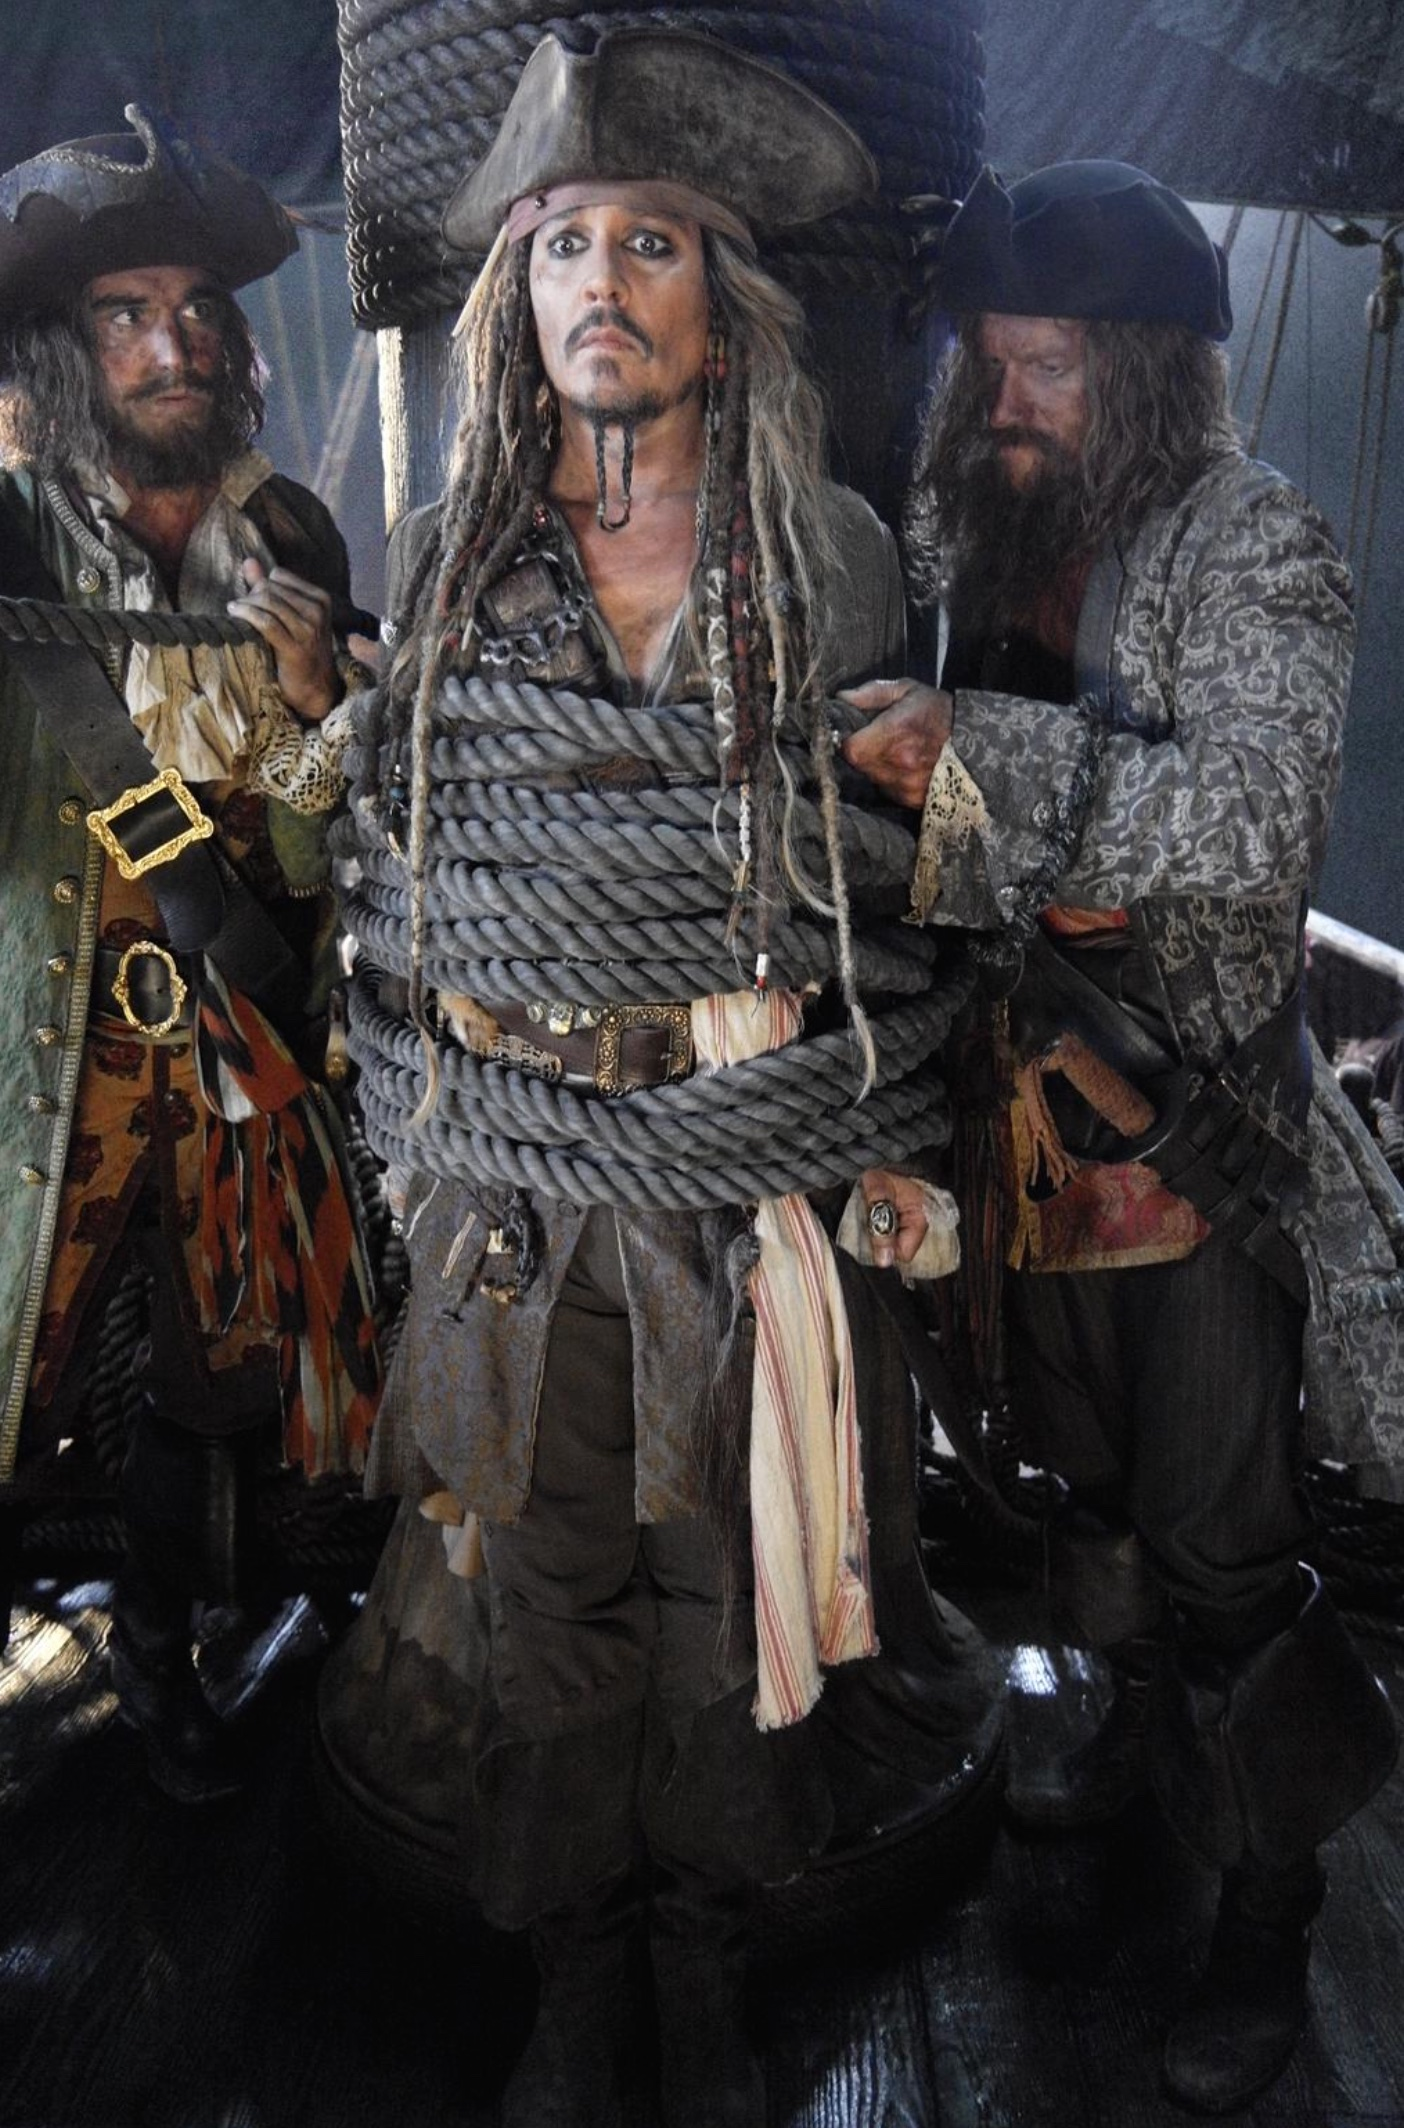 pirates-of-the-caribbean-dead-men-tell-no-tales-johnny-depp